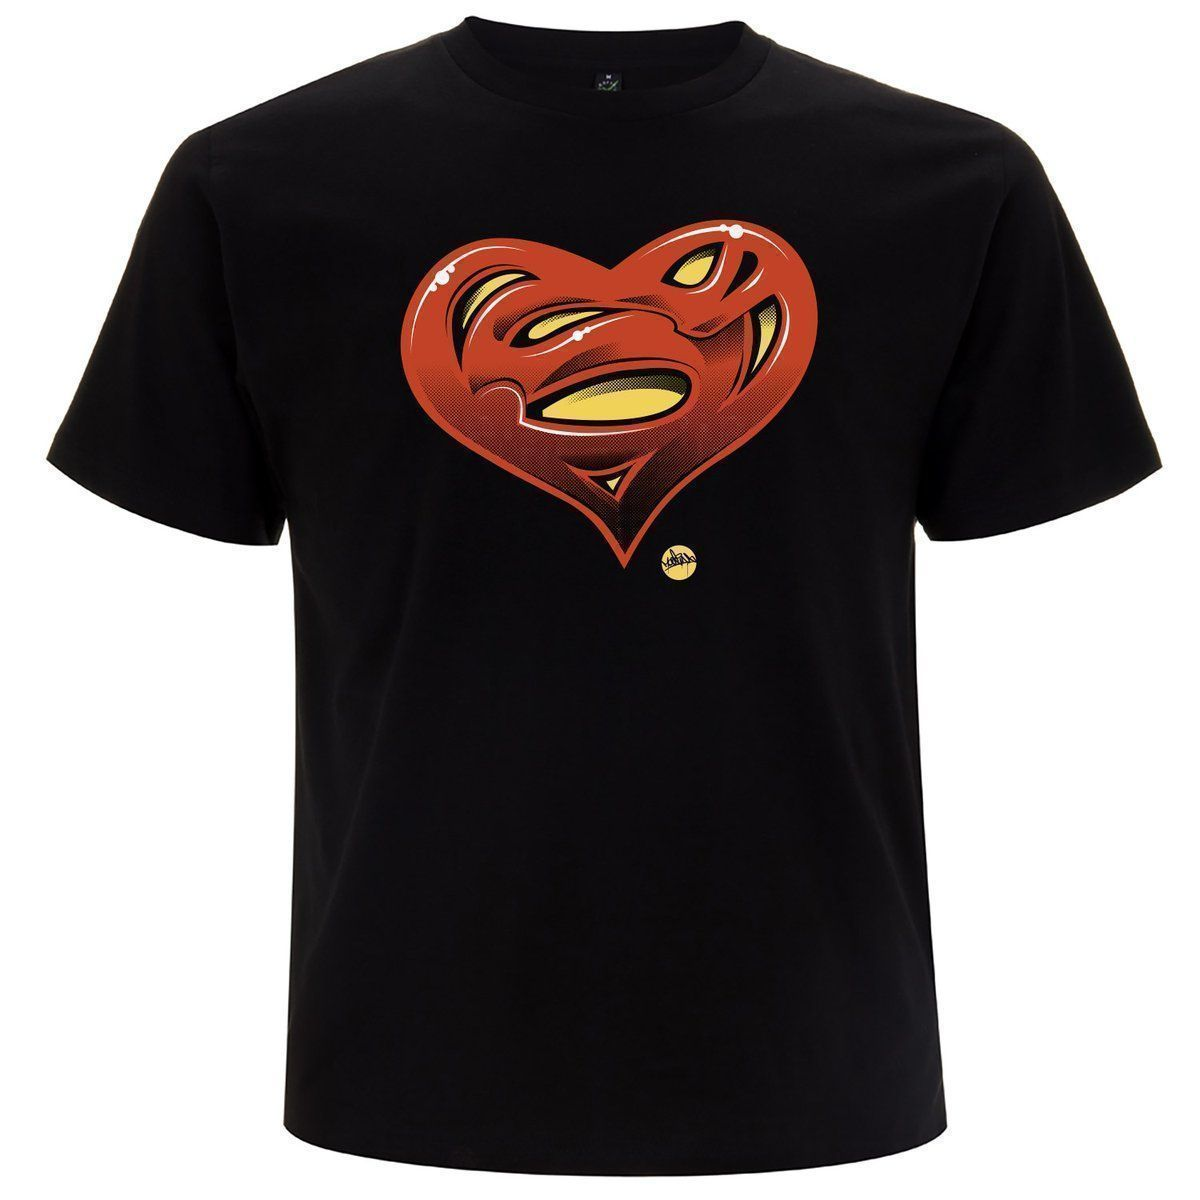 NOW SHIPPING! Sooperman Lover (Kids sizes also available) - In a time of hate, thought we spread a little love... some Sooperman love - Click here >>  #HipHop #Redman #Superman #Love #Xmas #XmasGift #XmasGiftIdeas RT